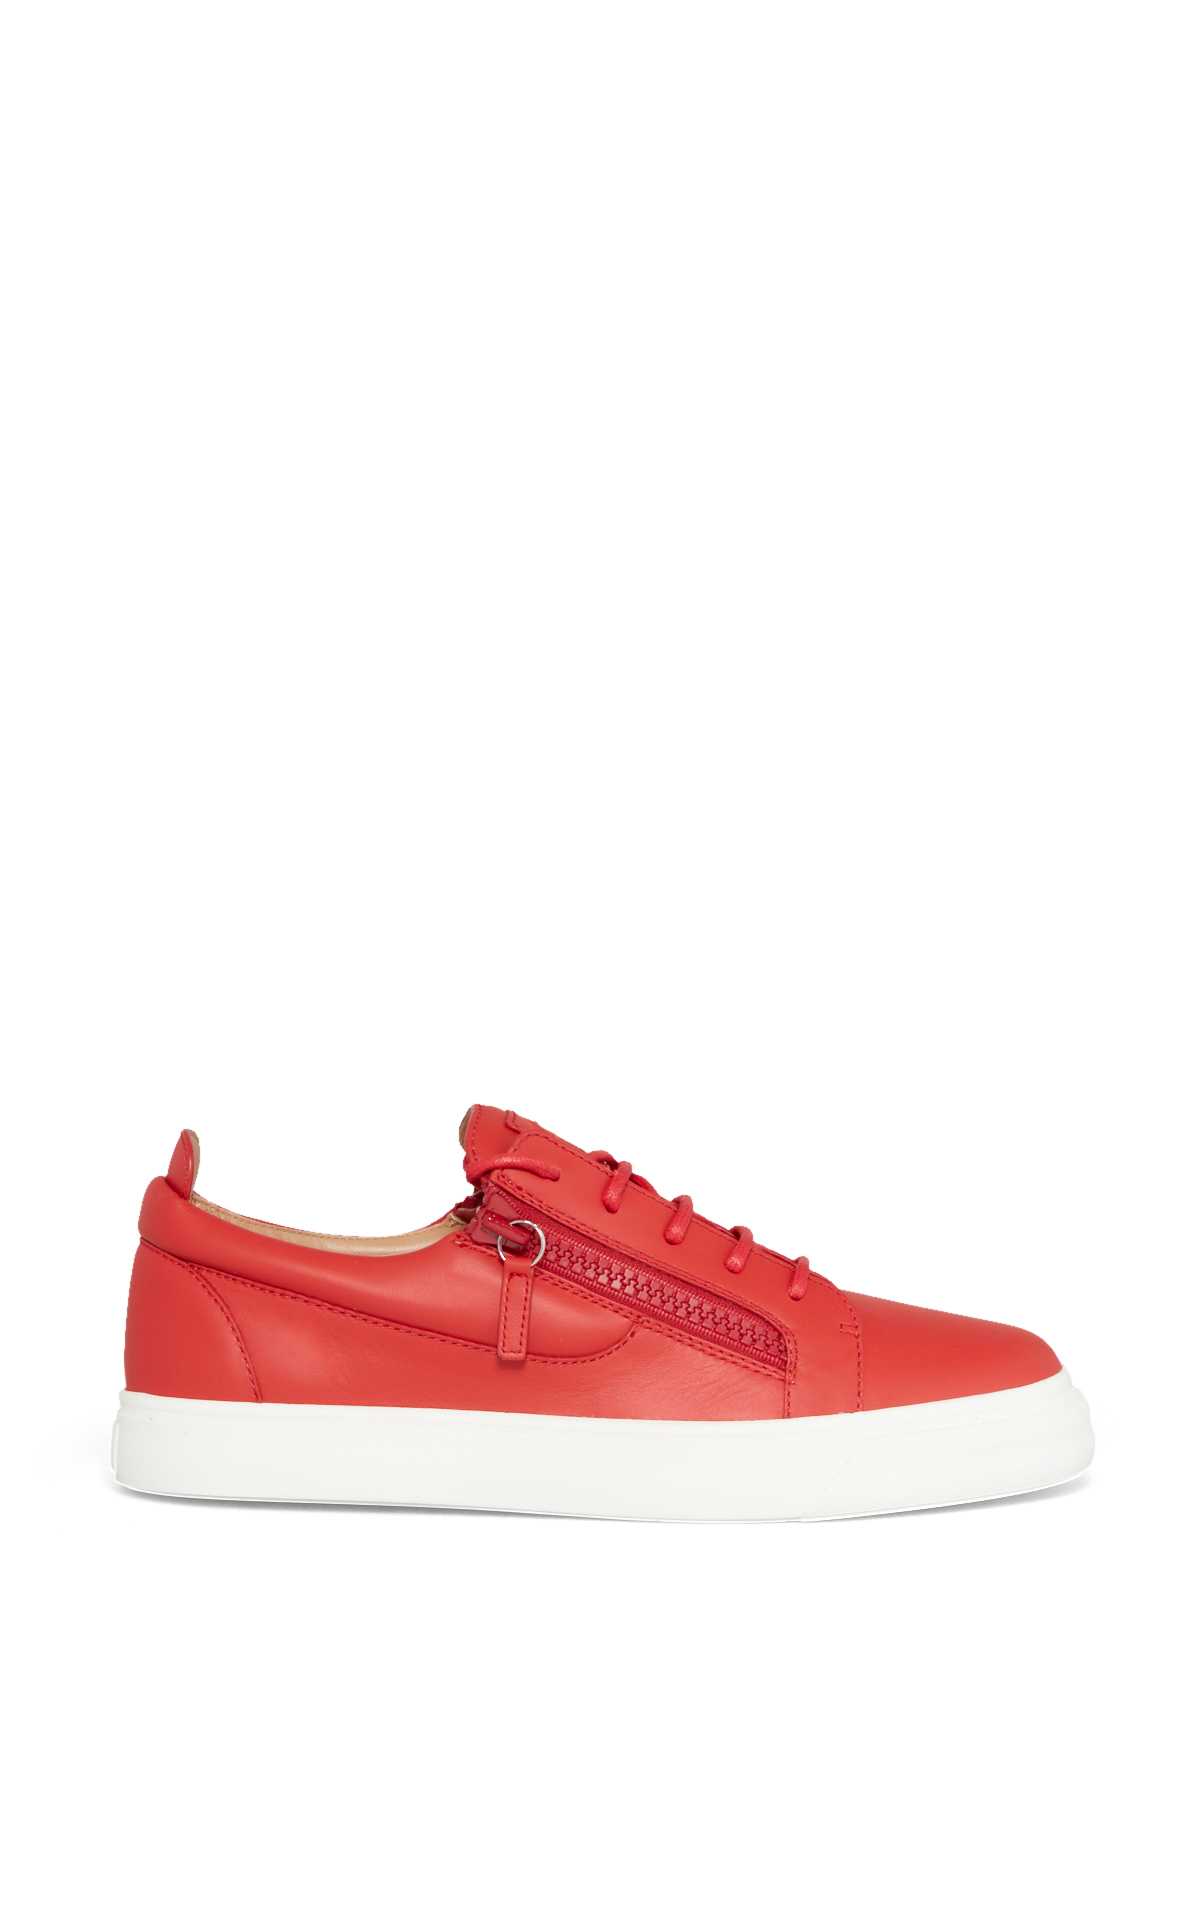 Guiseppe Zanotti Men's red sneakers*